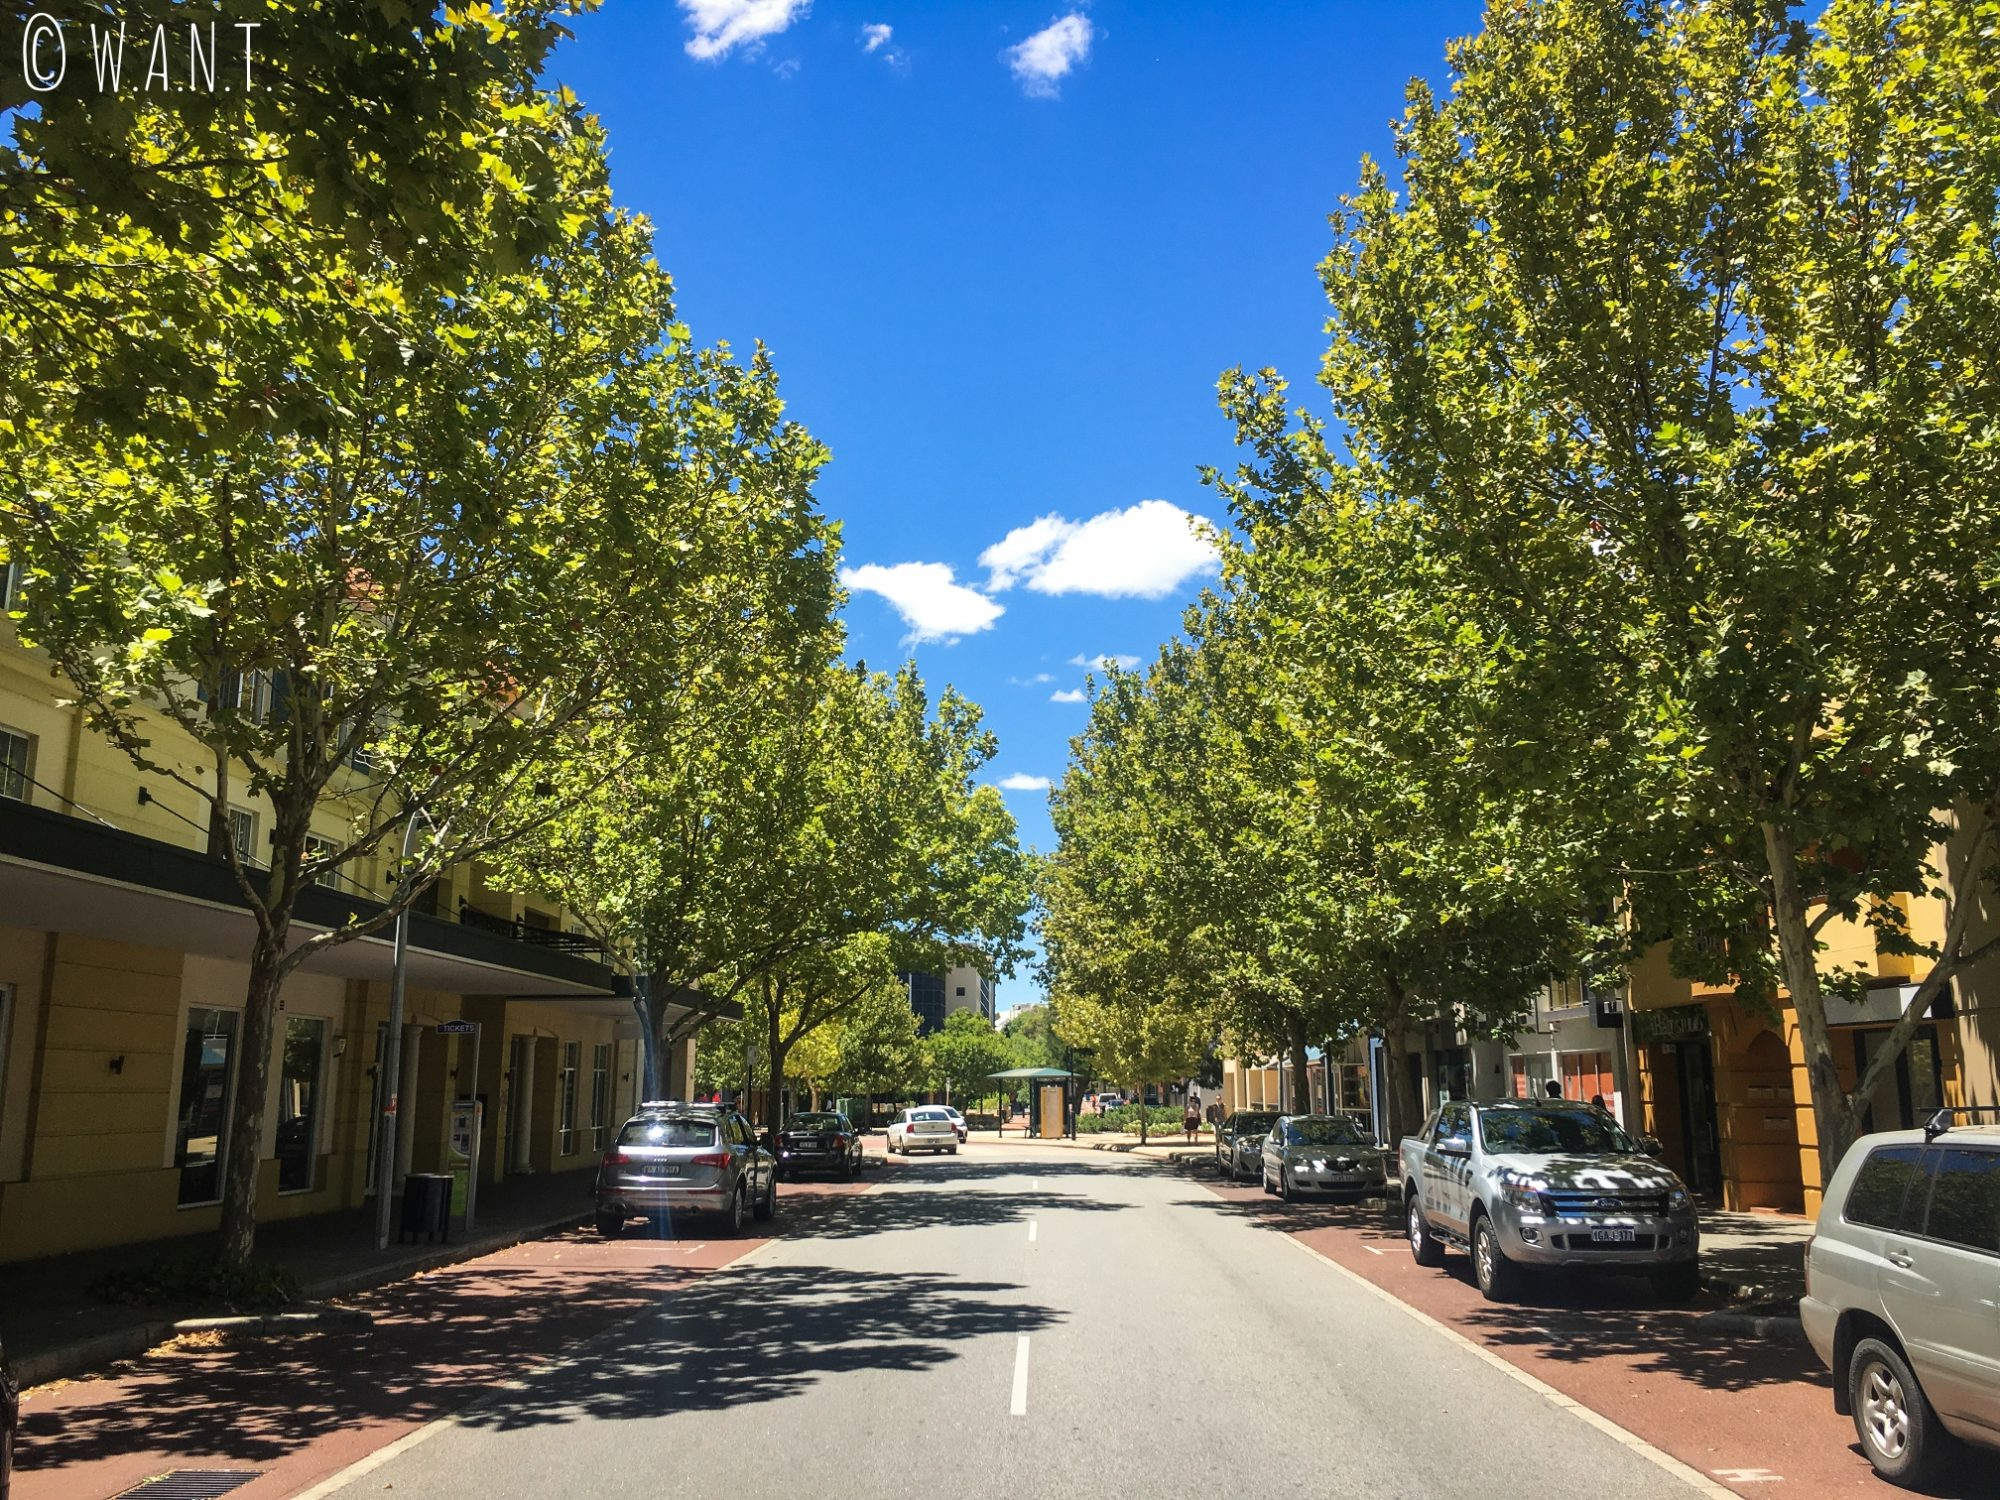 Rue du quartier de East Perth